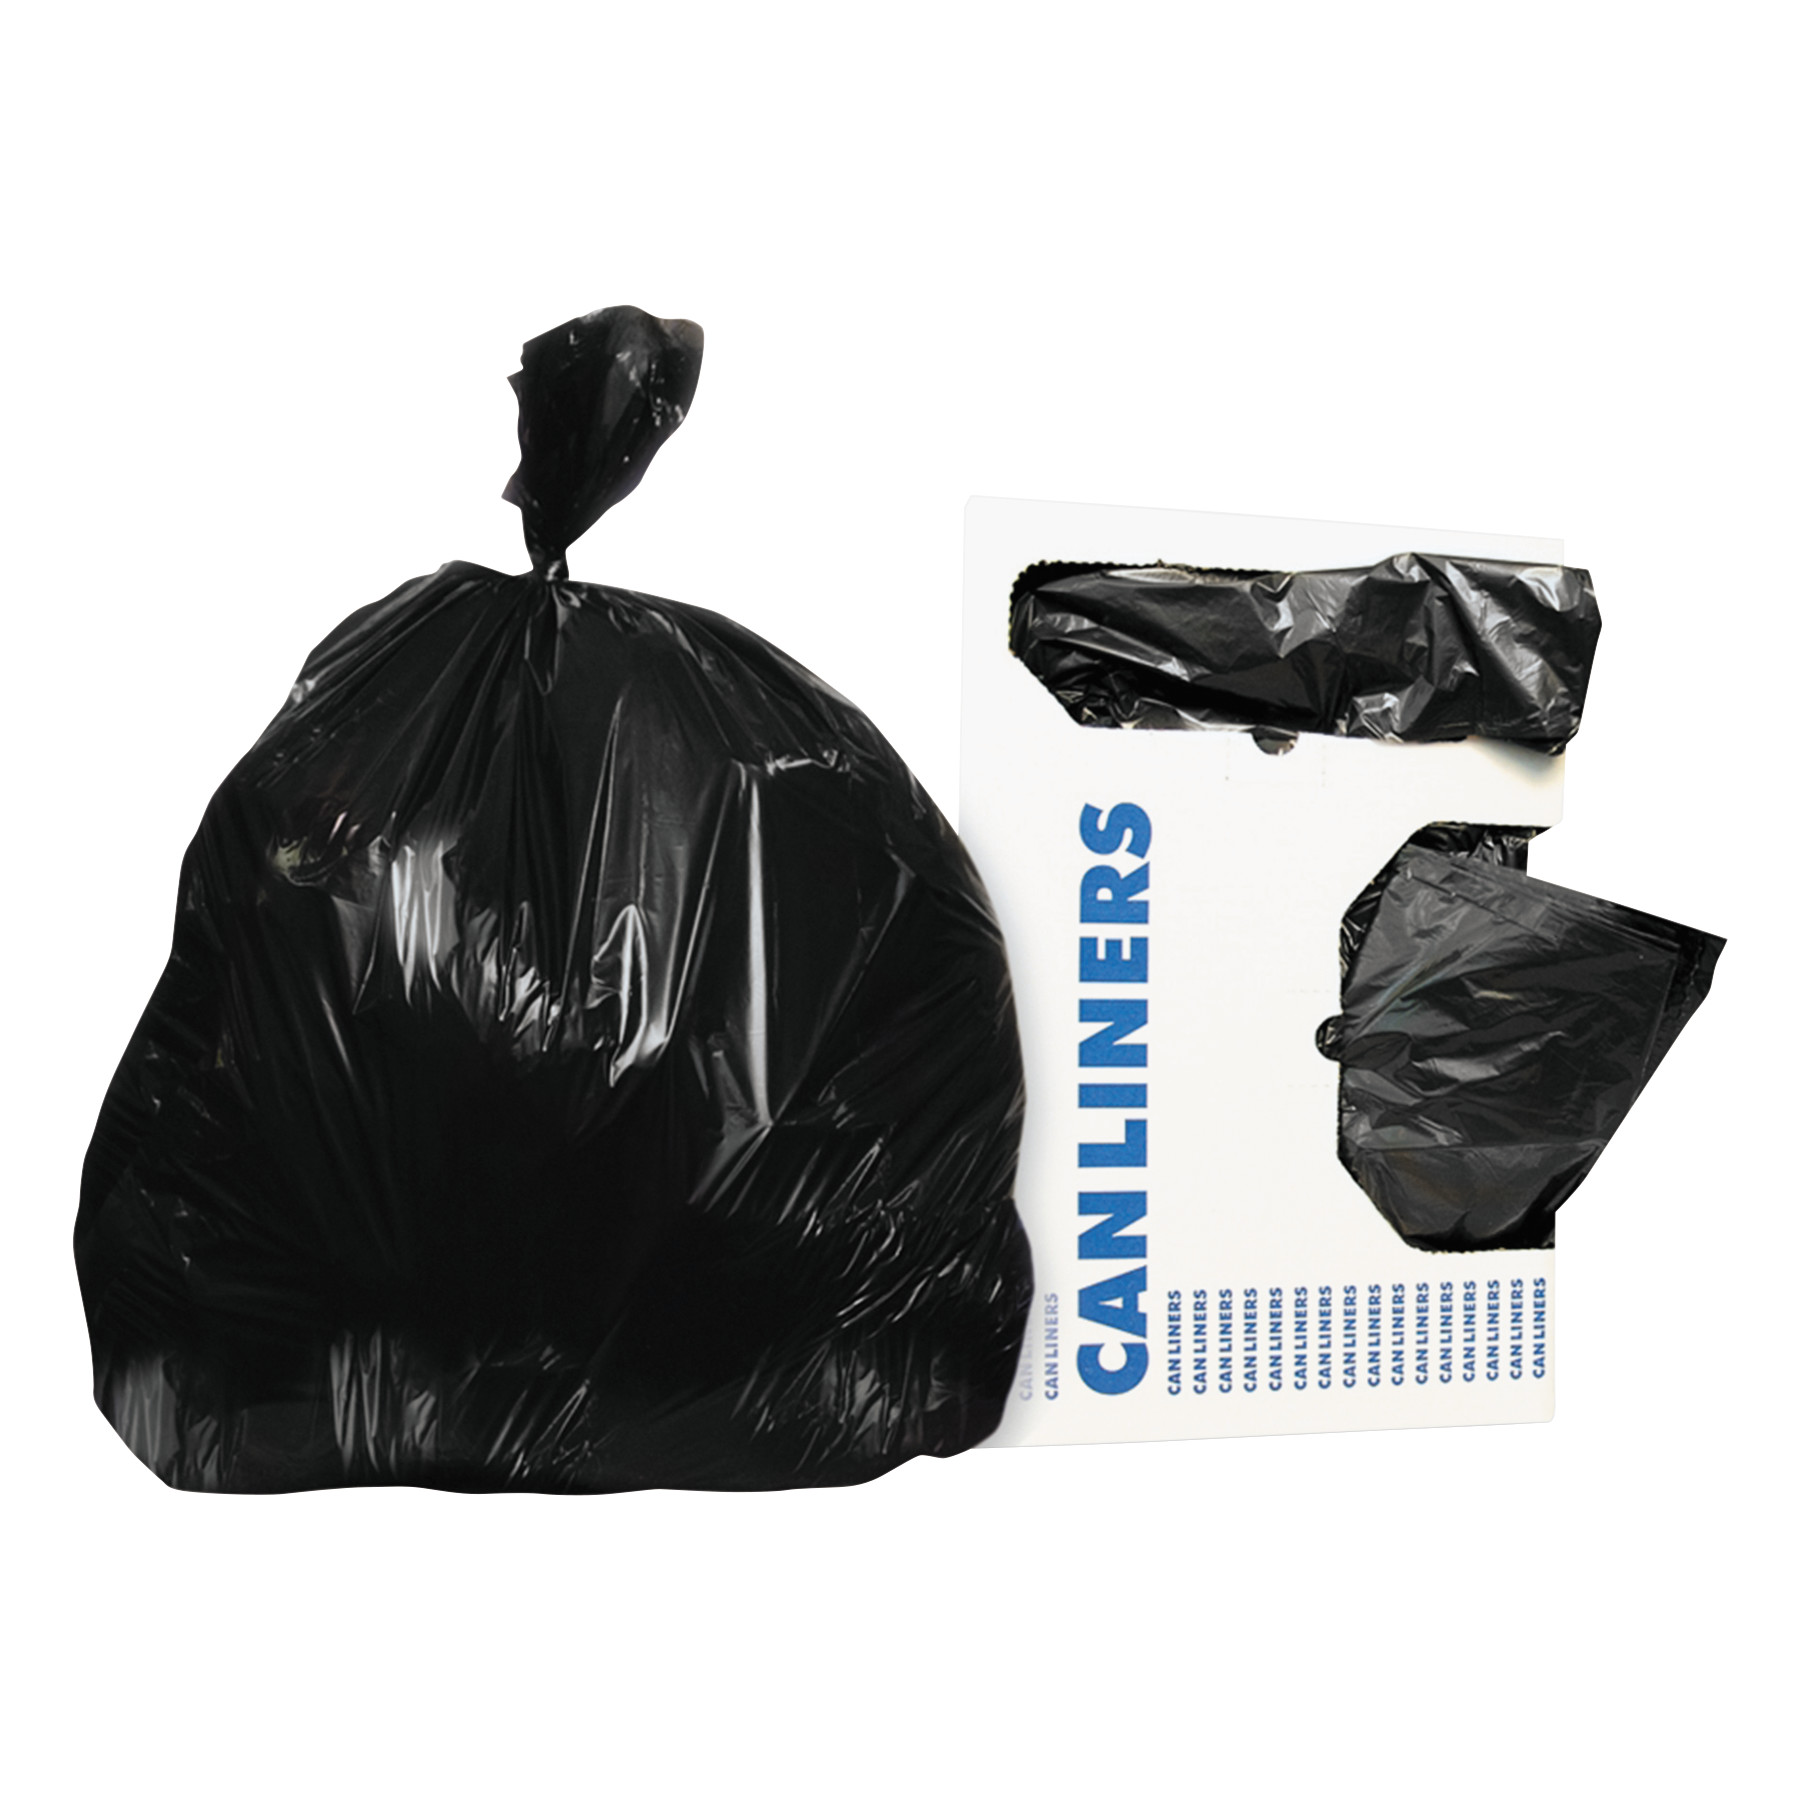 Heritage Low-Density Trash Bags, 20-30 gal, 0.5 mil, 30 x 36, Black, 250/Carton